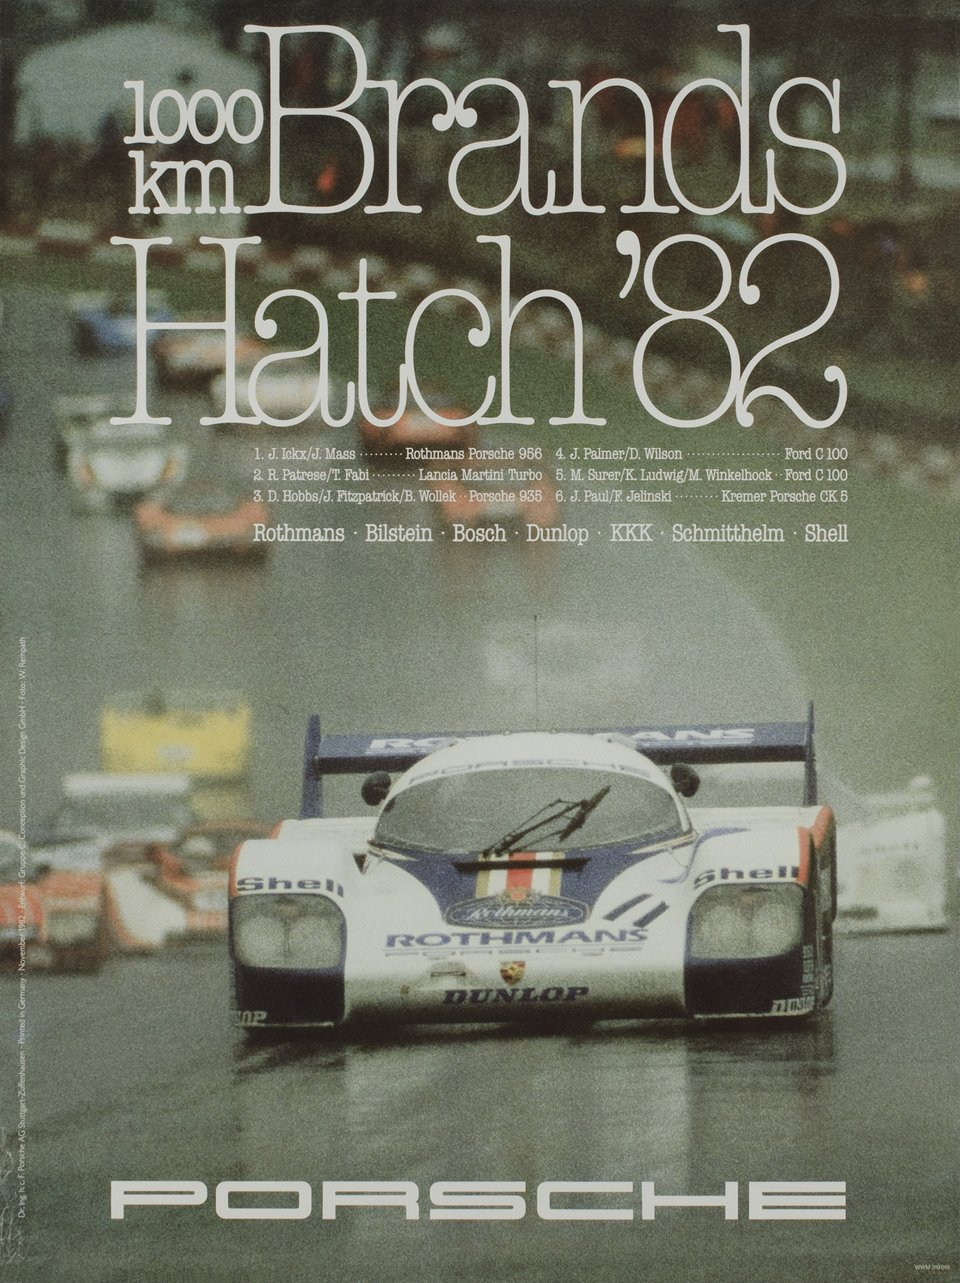 Porsche, 1000km Brands Hatch' 82 – Affiche ancienne – W. REMPATH – 1982